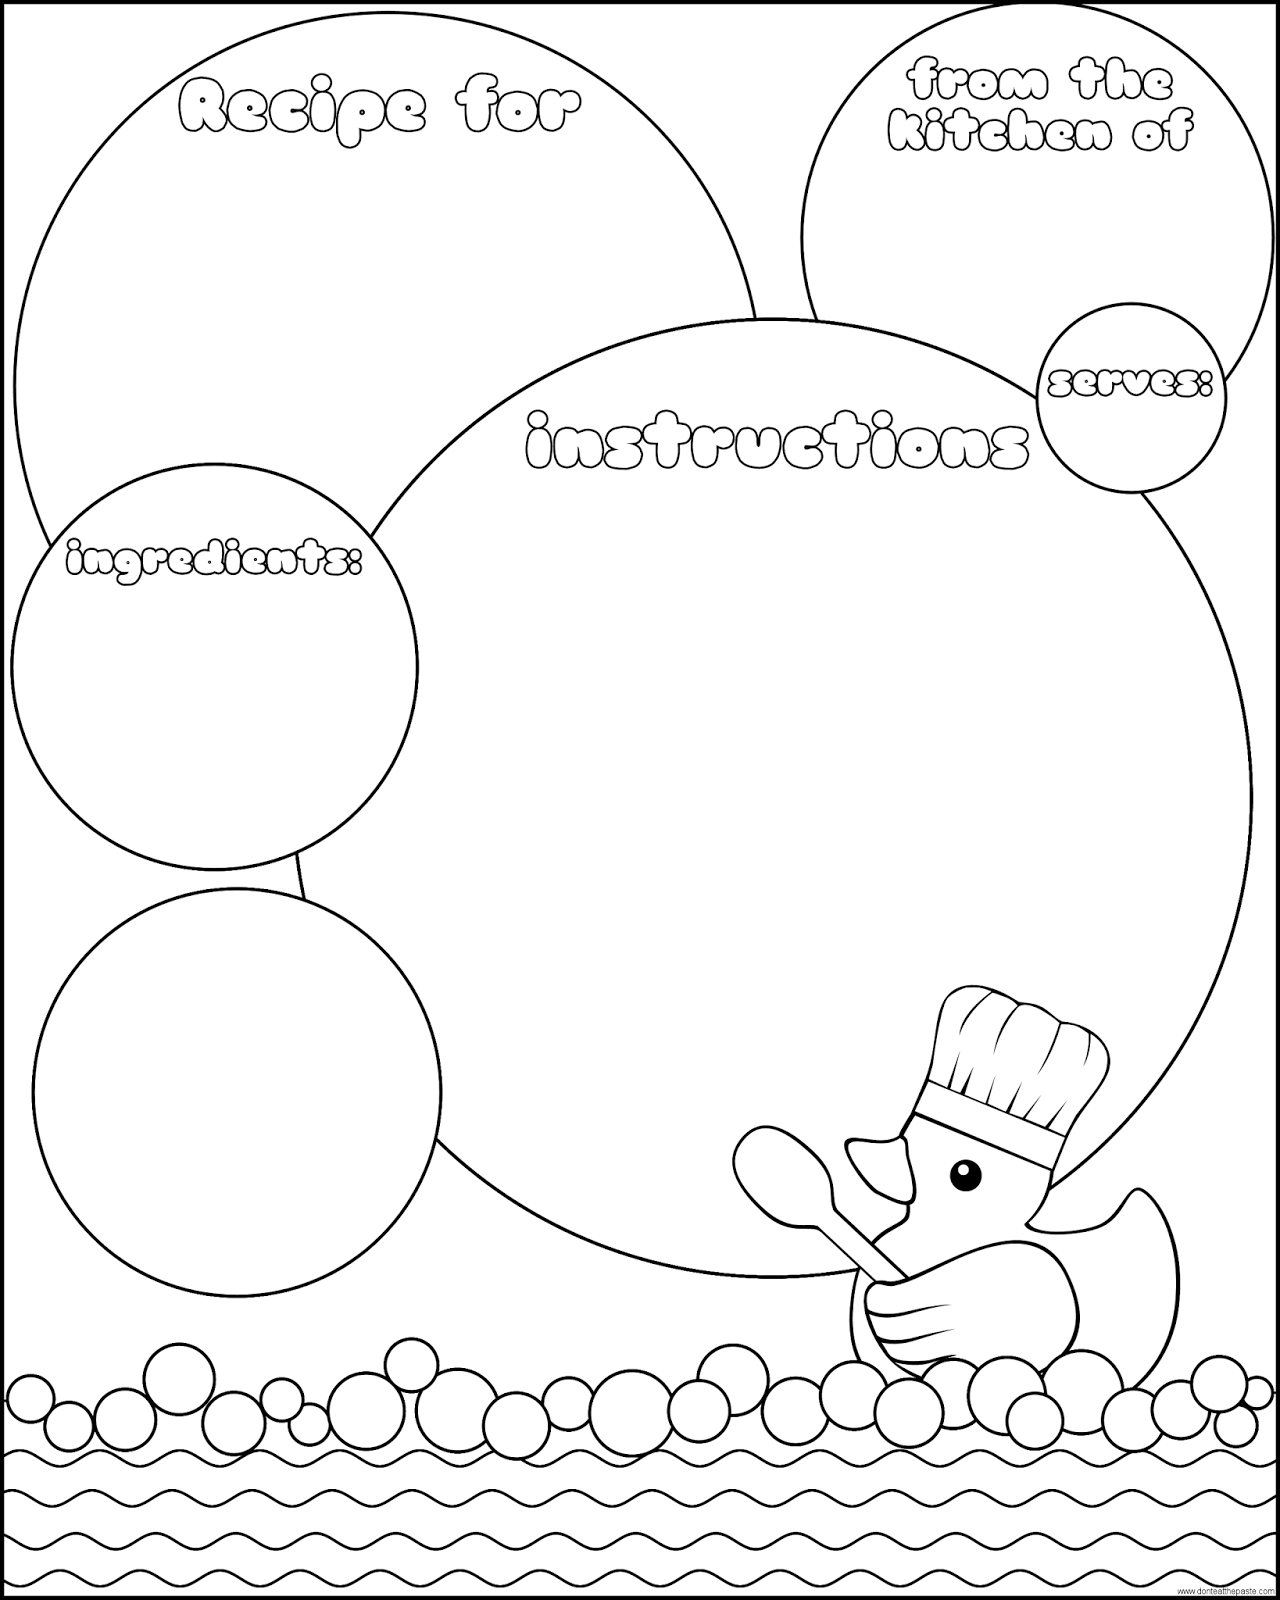 Printable rubber duck recipe page- there is a colored version available as well. #recipes #cooking